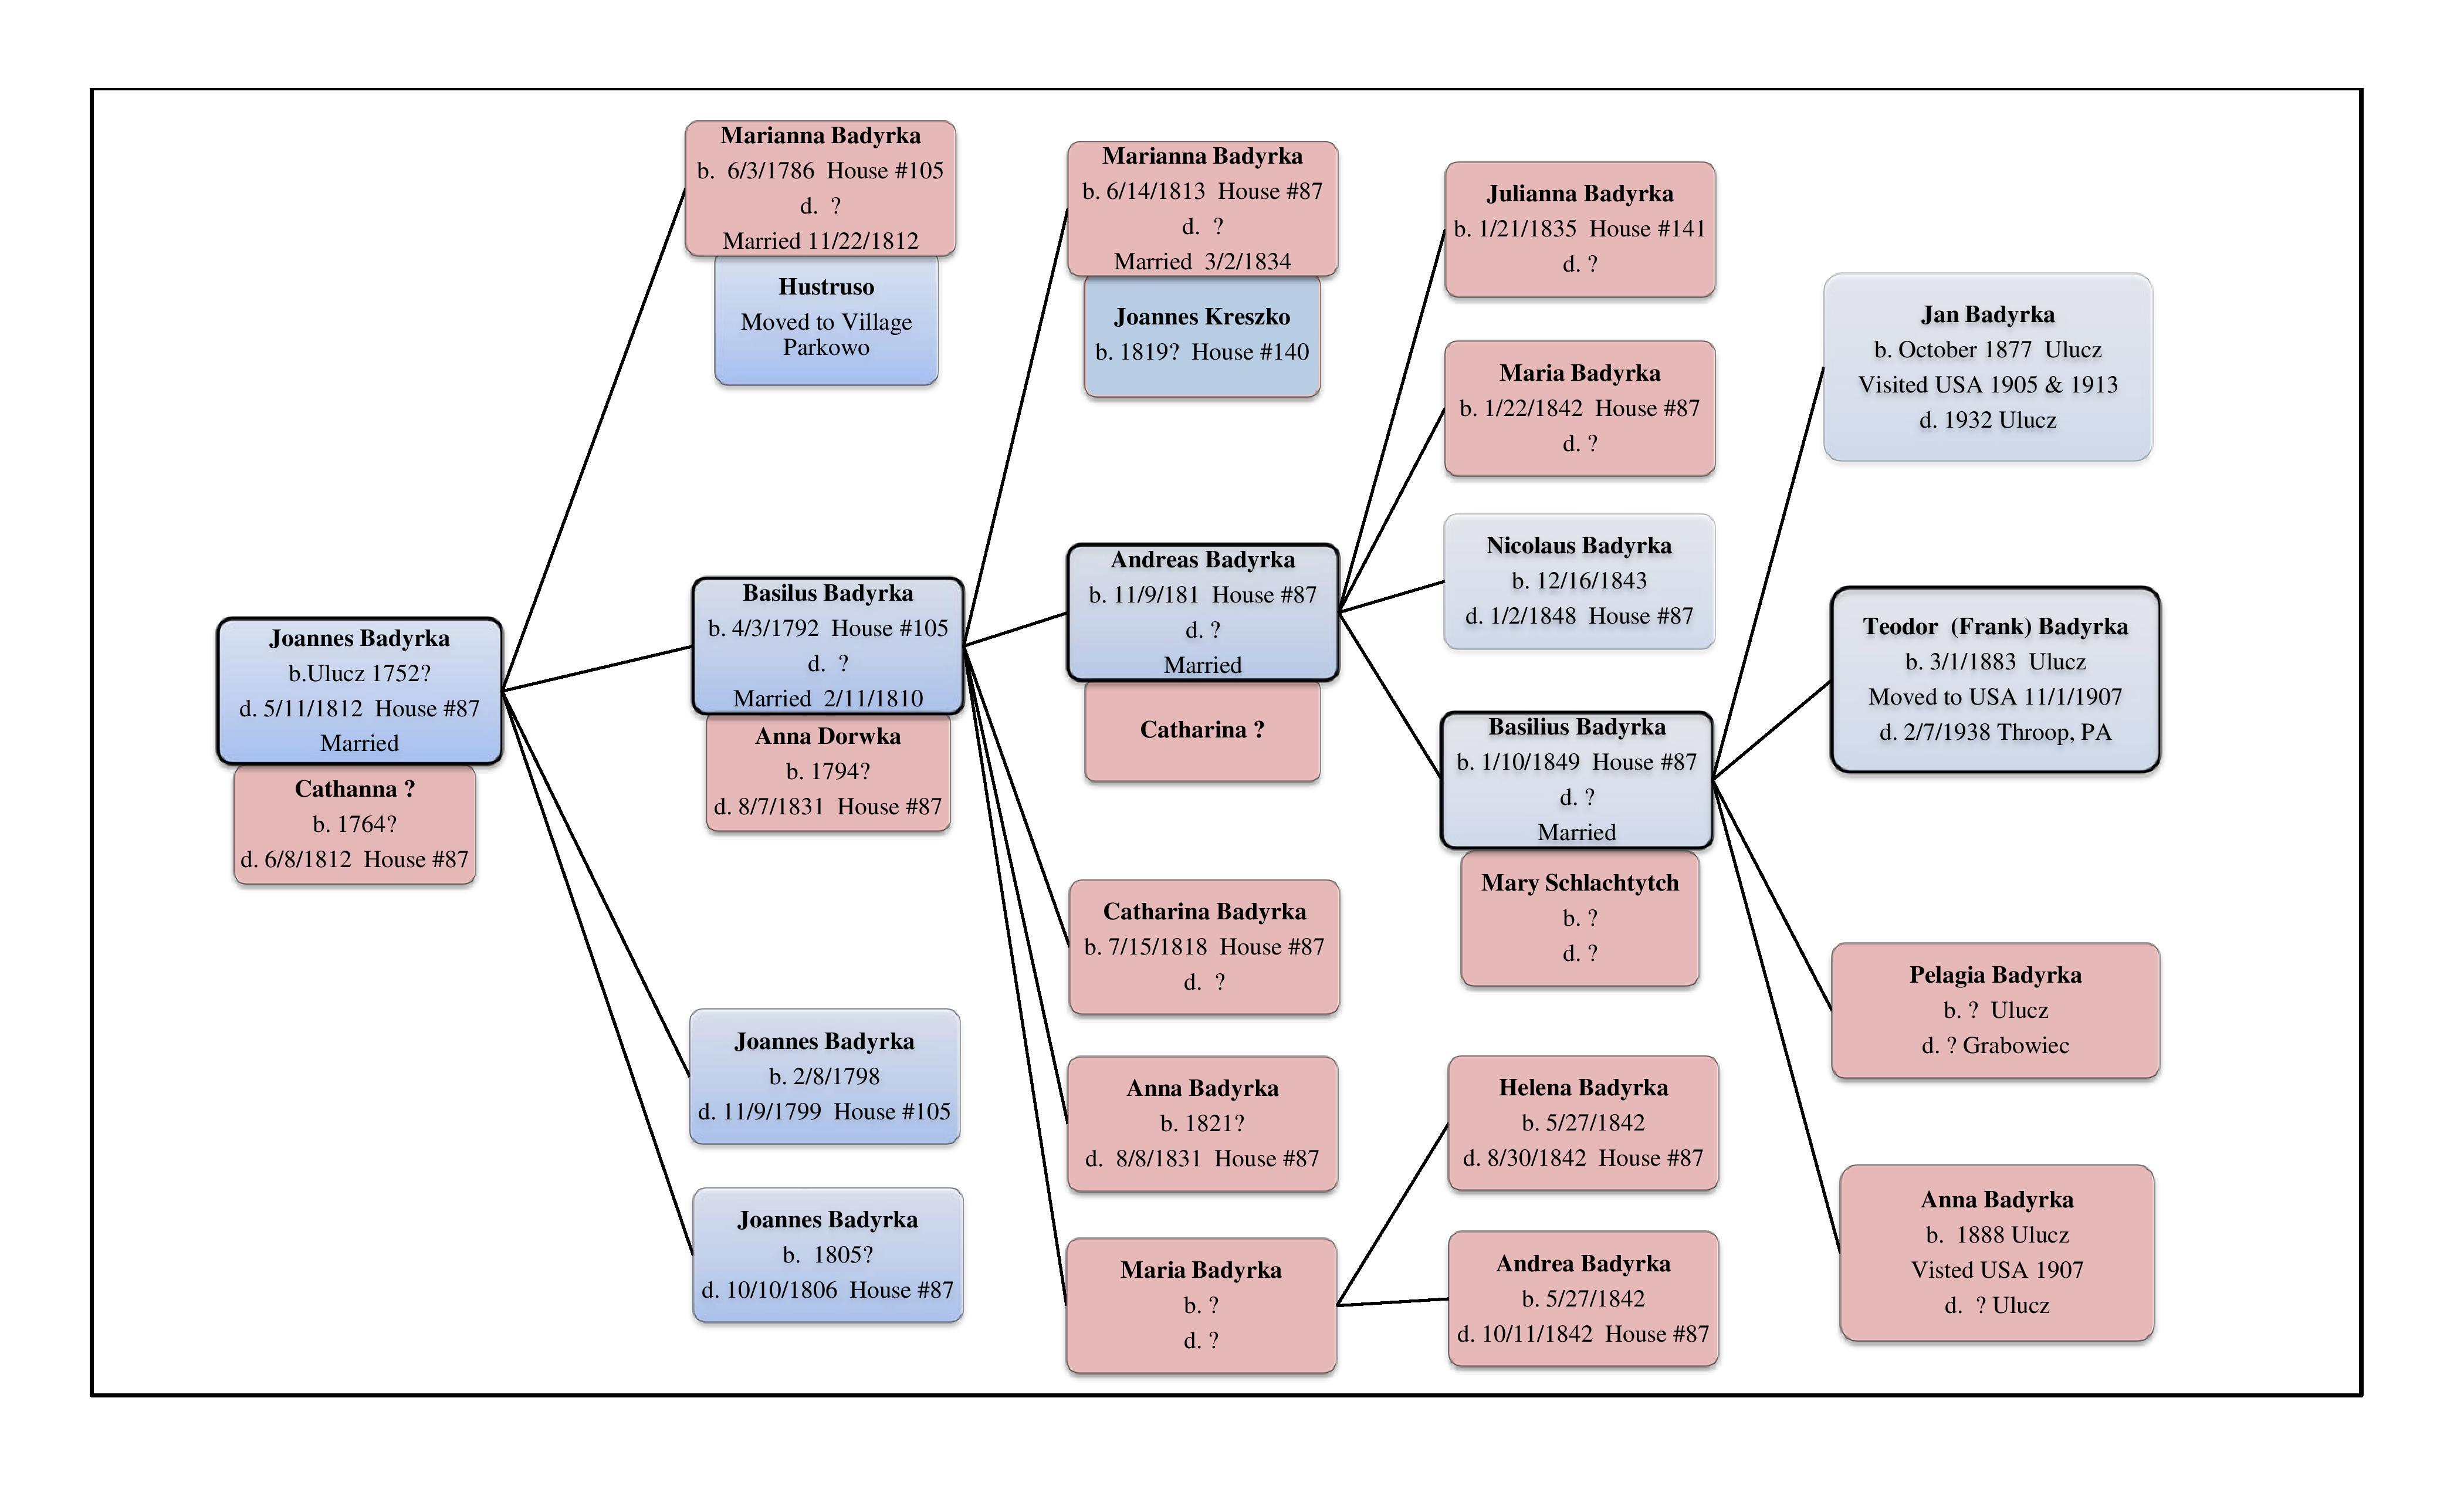 The Badyrka family tree-research by Peter Bush